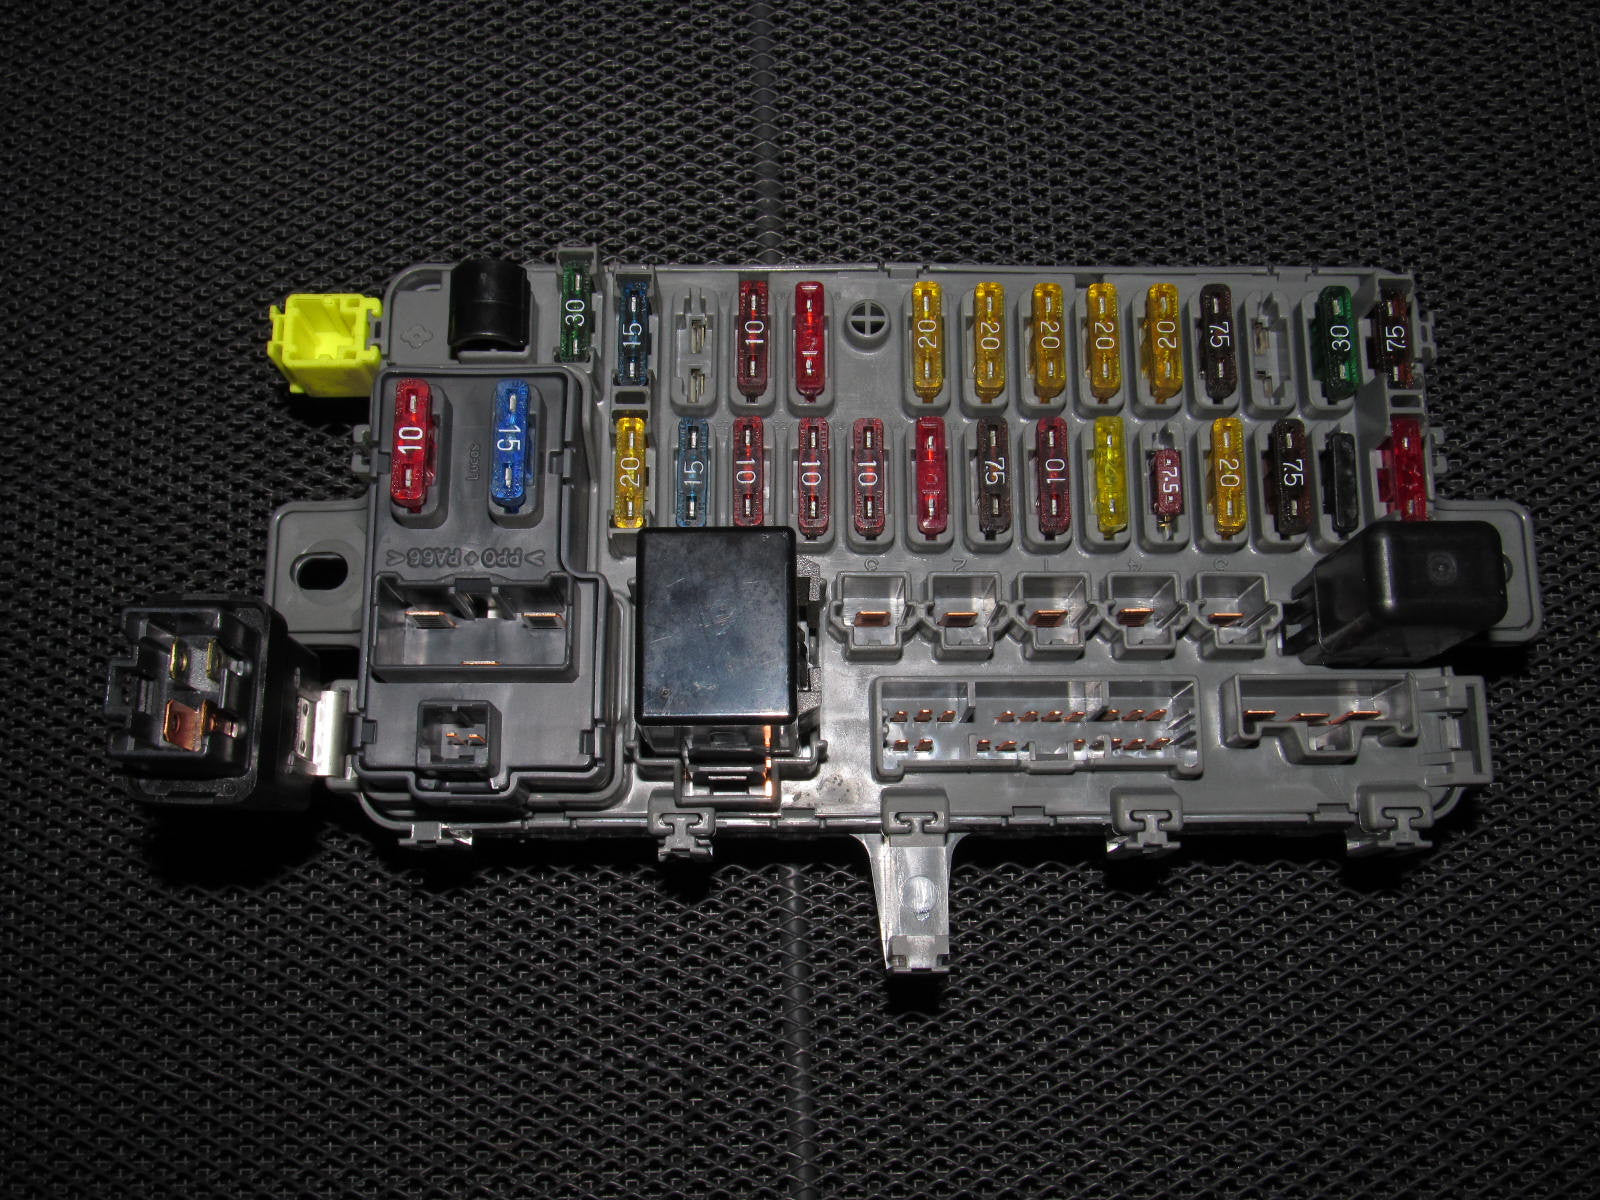 1992 Acura Integra Interior Fuse Box Diagram Trusted Wiring 96 In Library 2008 Honda Fit